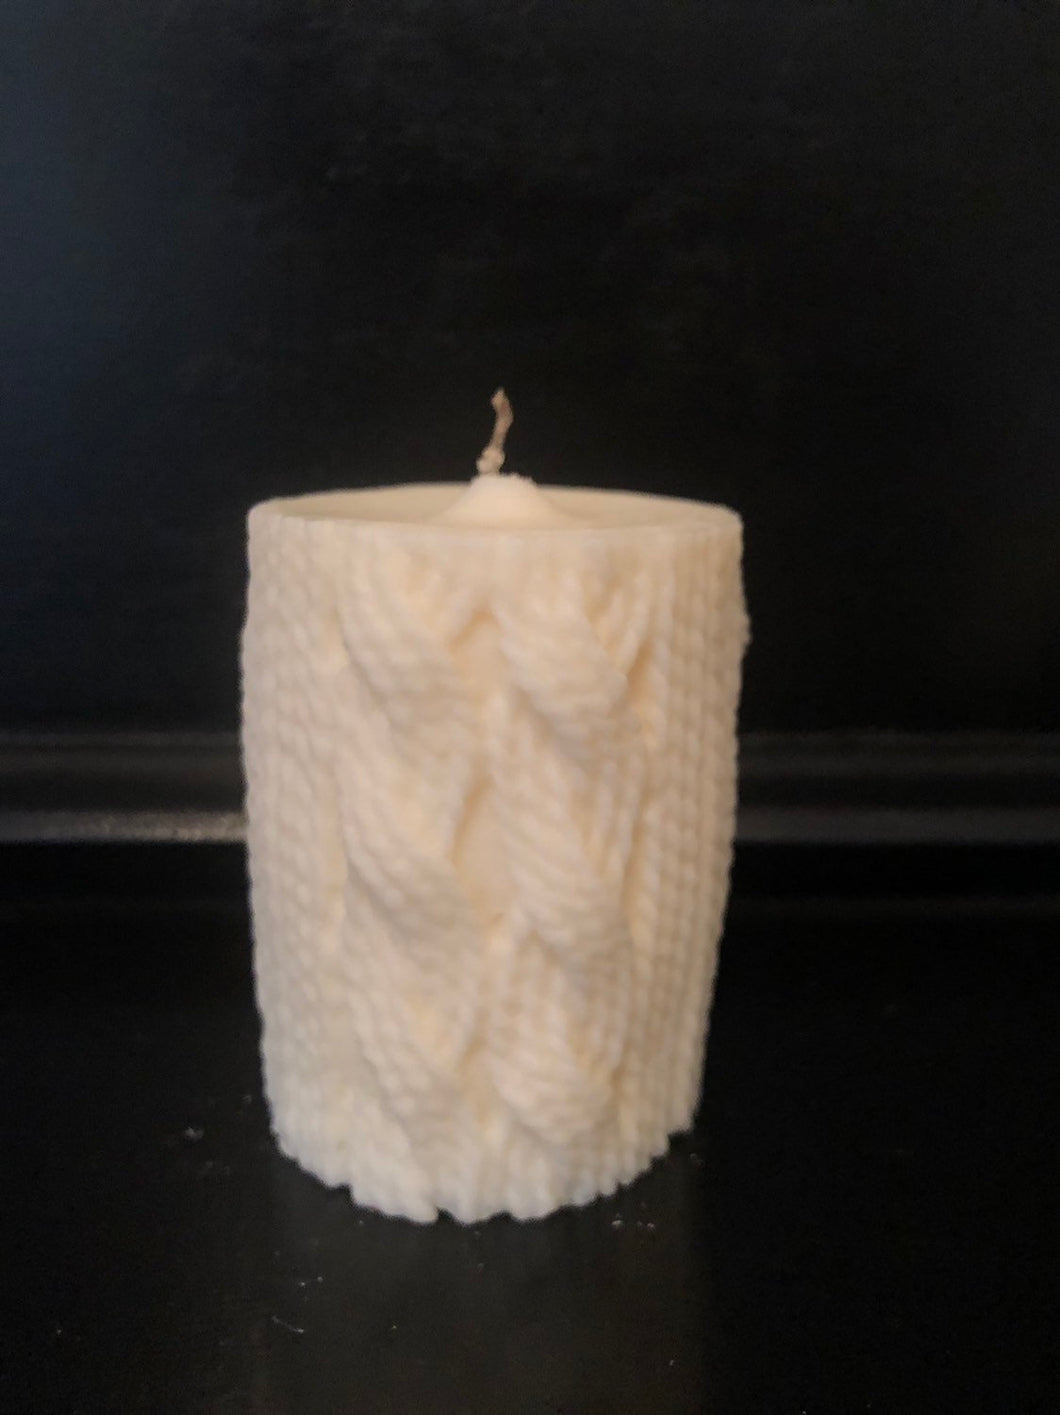 A soy candle in a pillar shape featuring a cable knit motif on the wax, sitting on a black backdrop